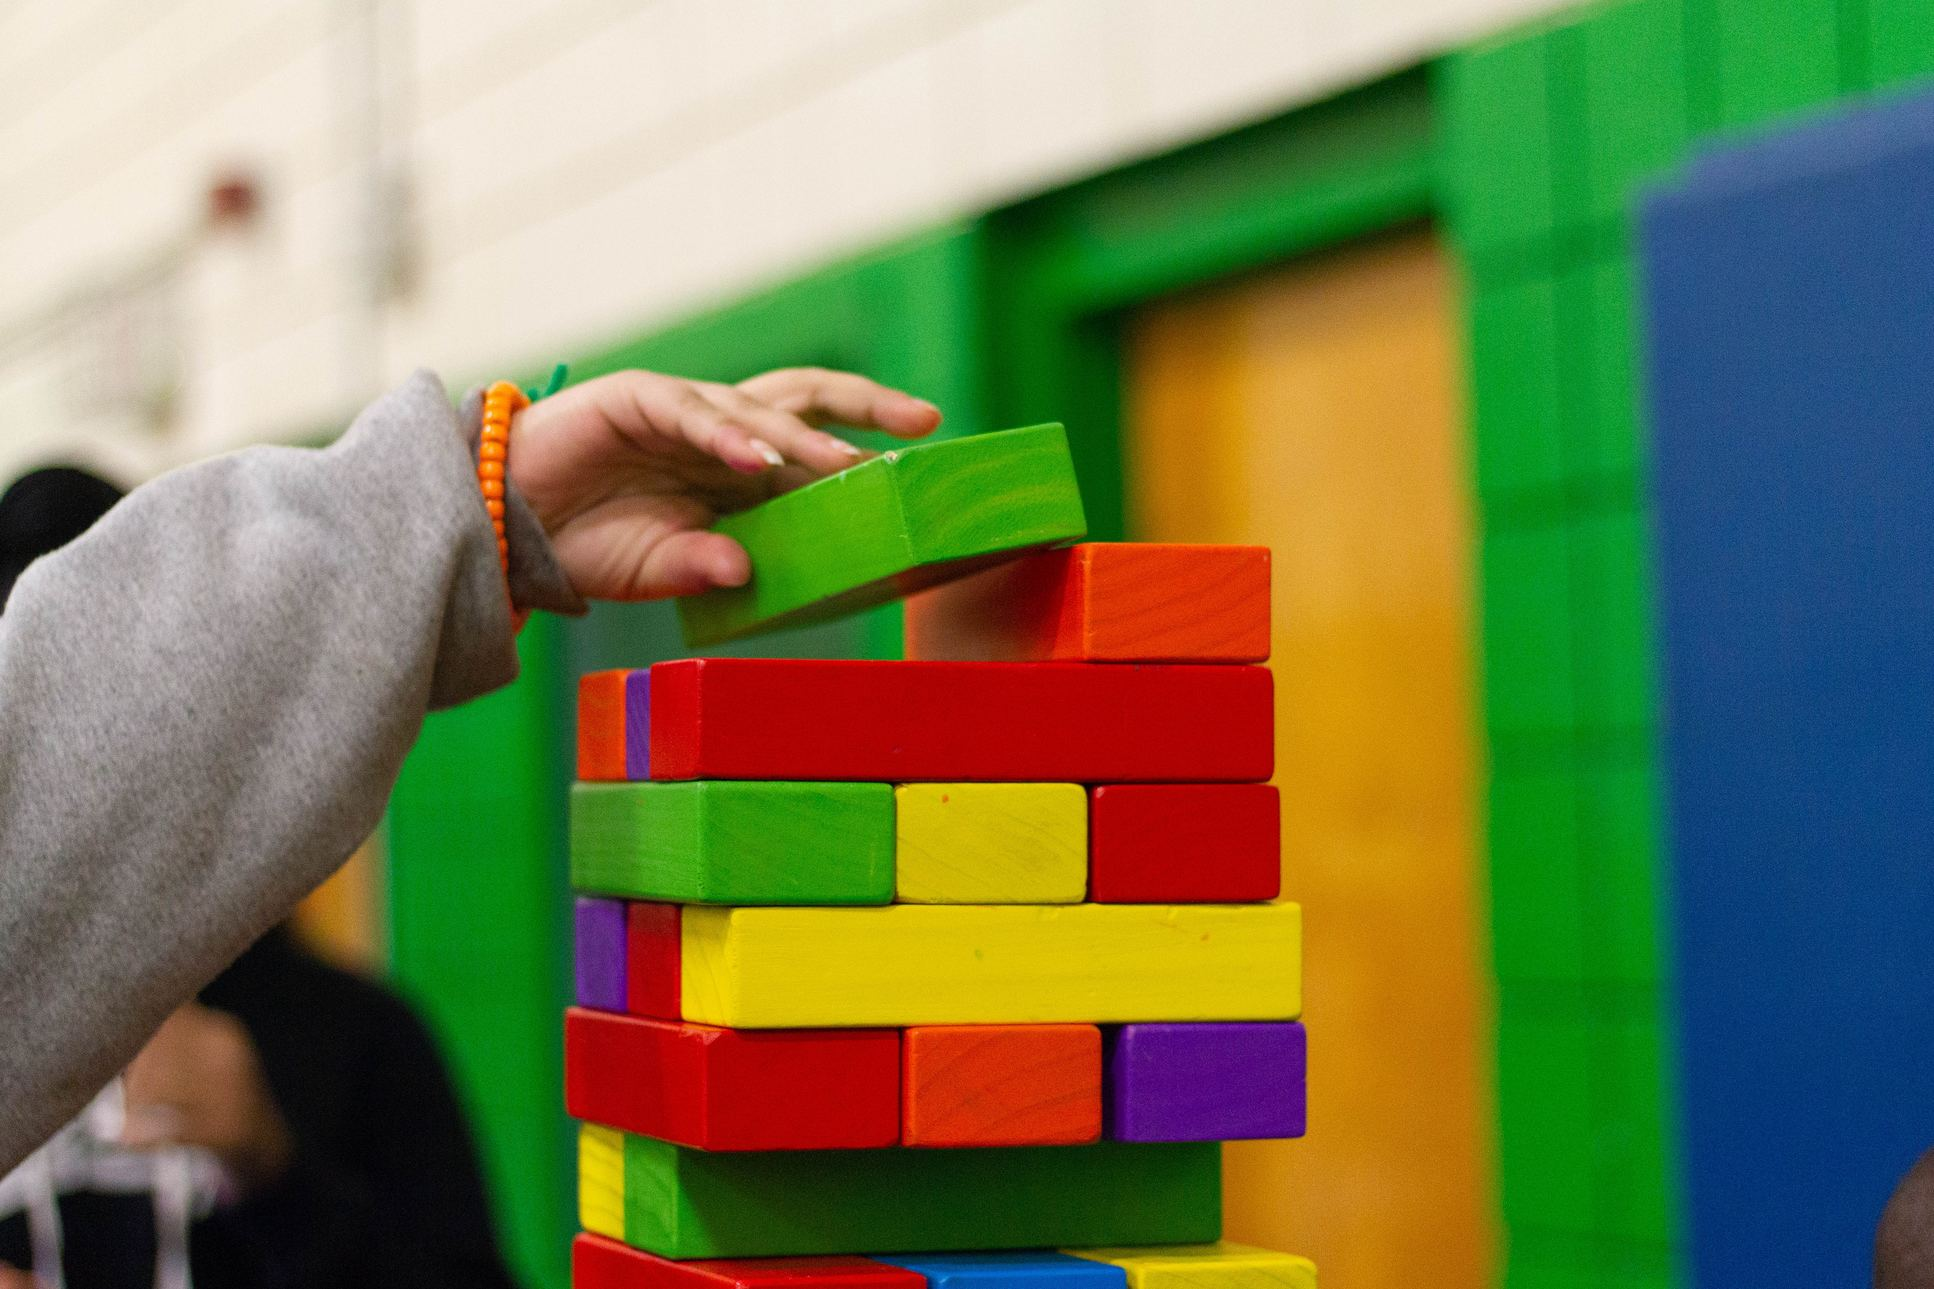 child's hand stacking blocks